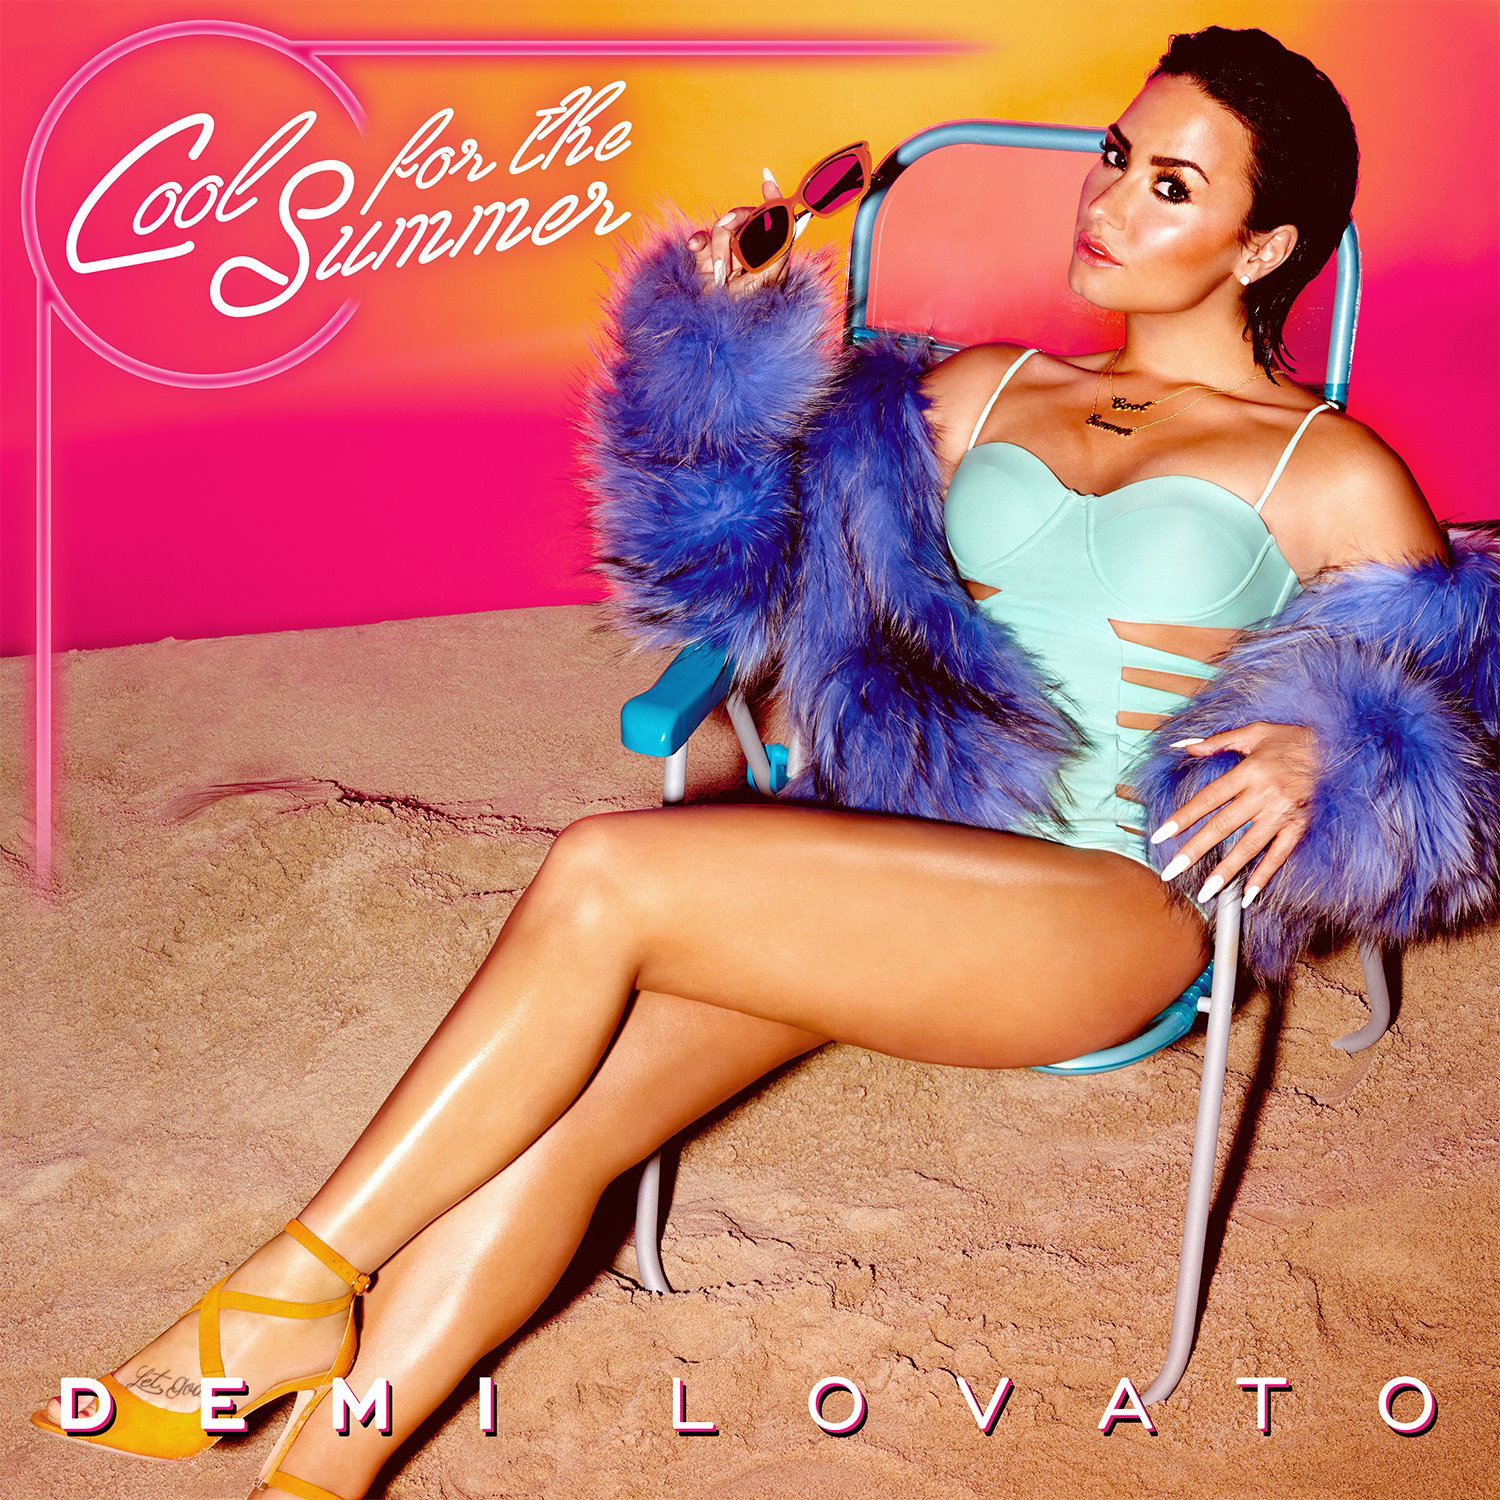 Demi-Lovato-Cool-For-the-Summer-2015-1500×1500